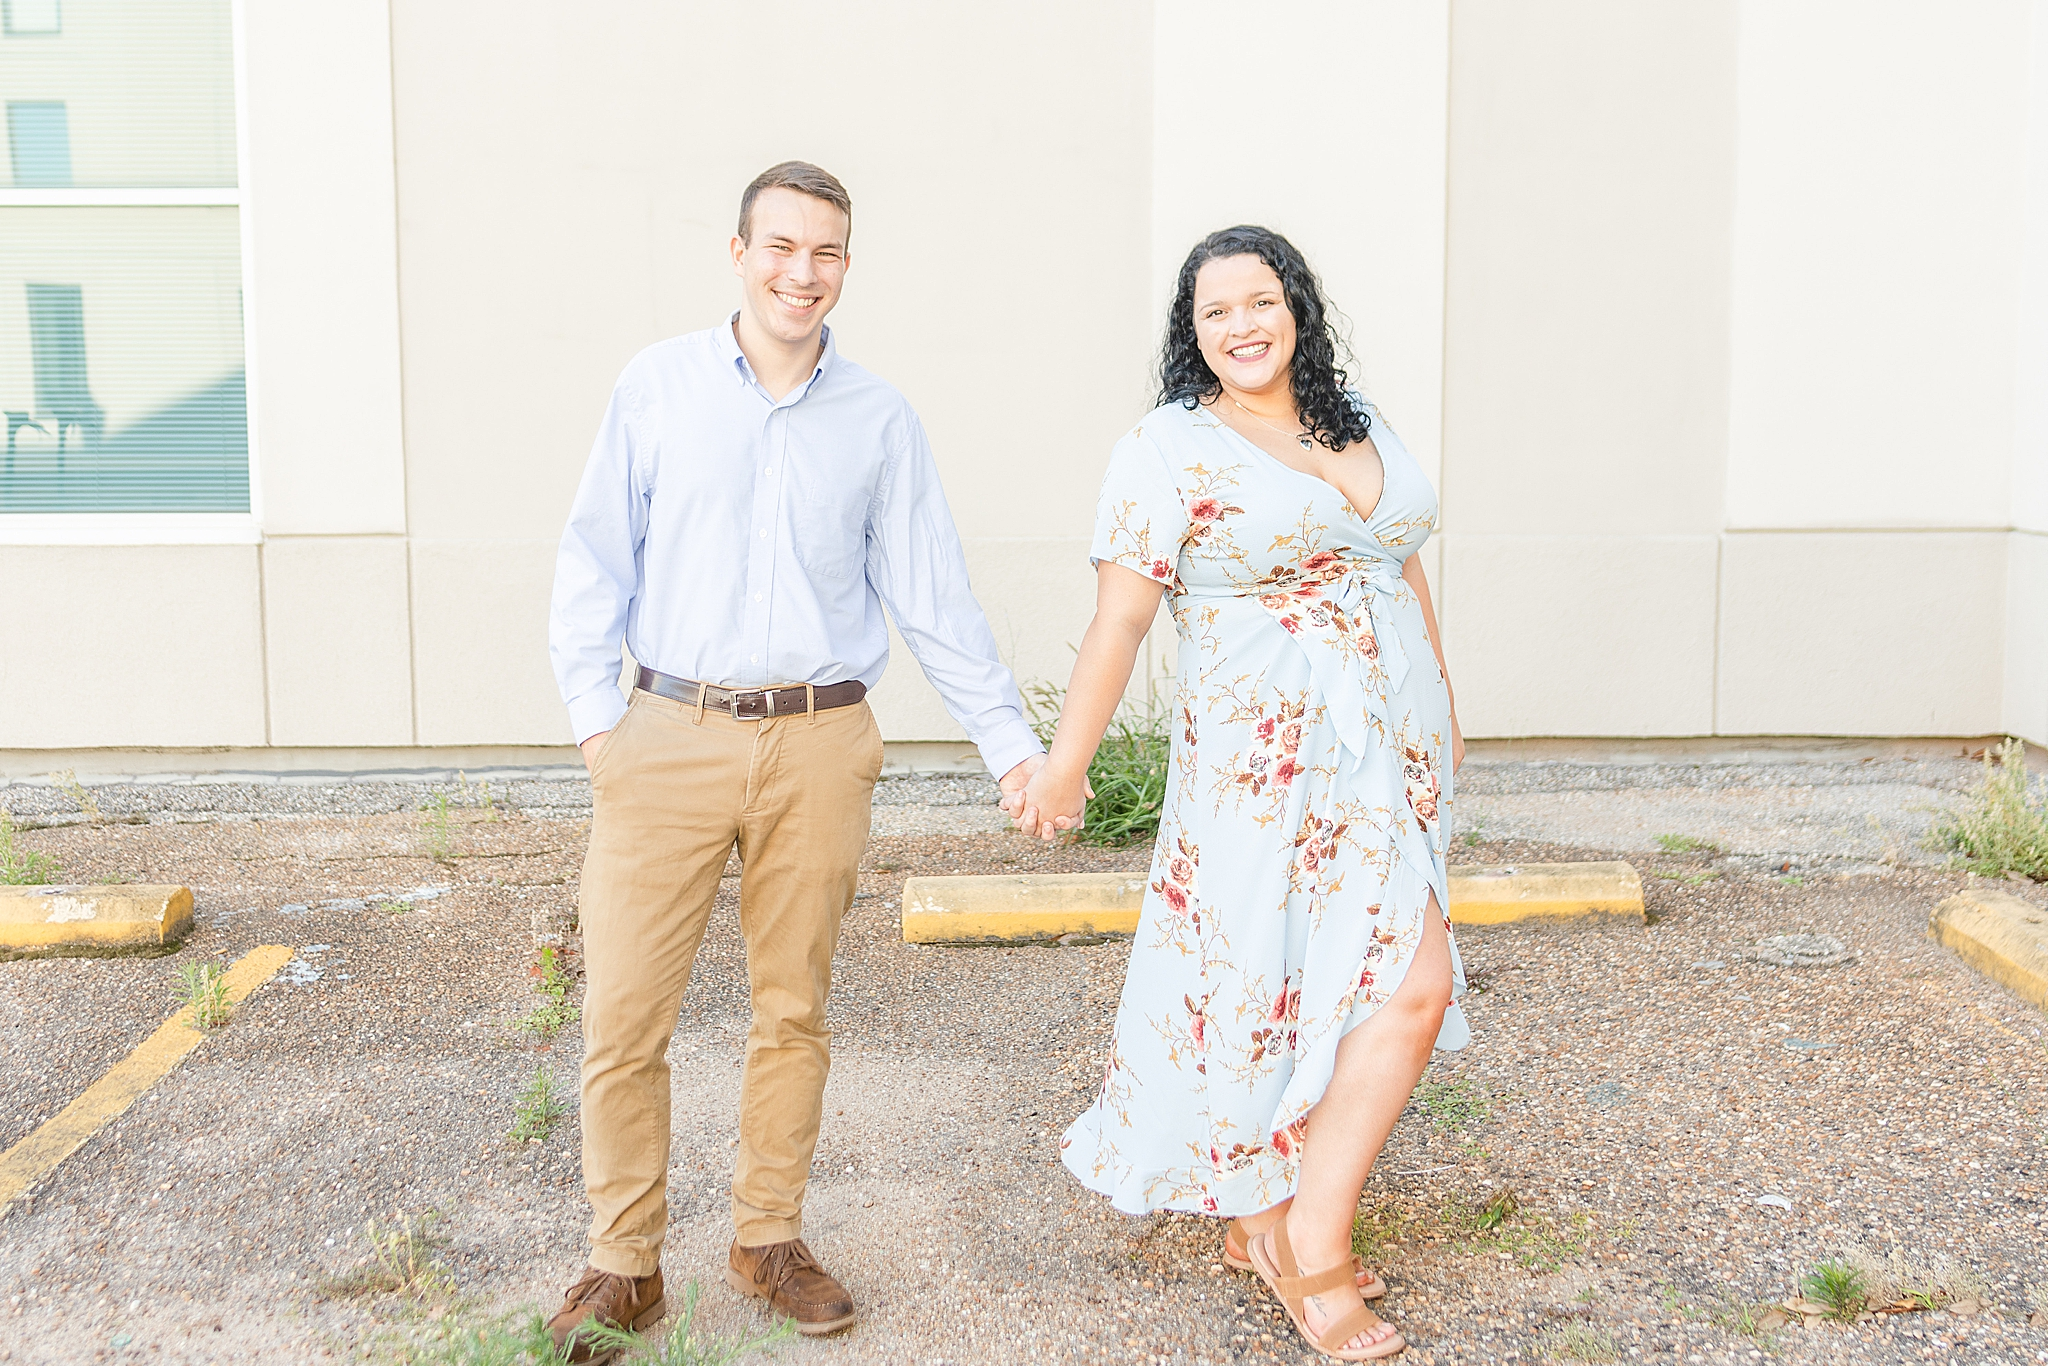 downtown Fairhope engagement portraits by white wall